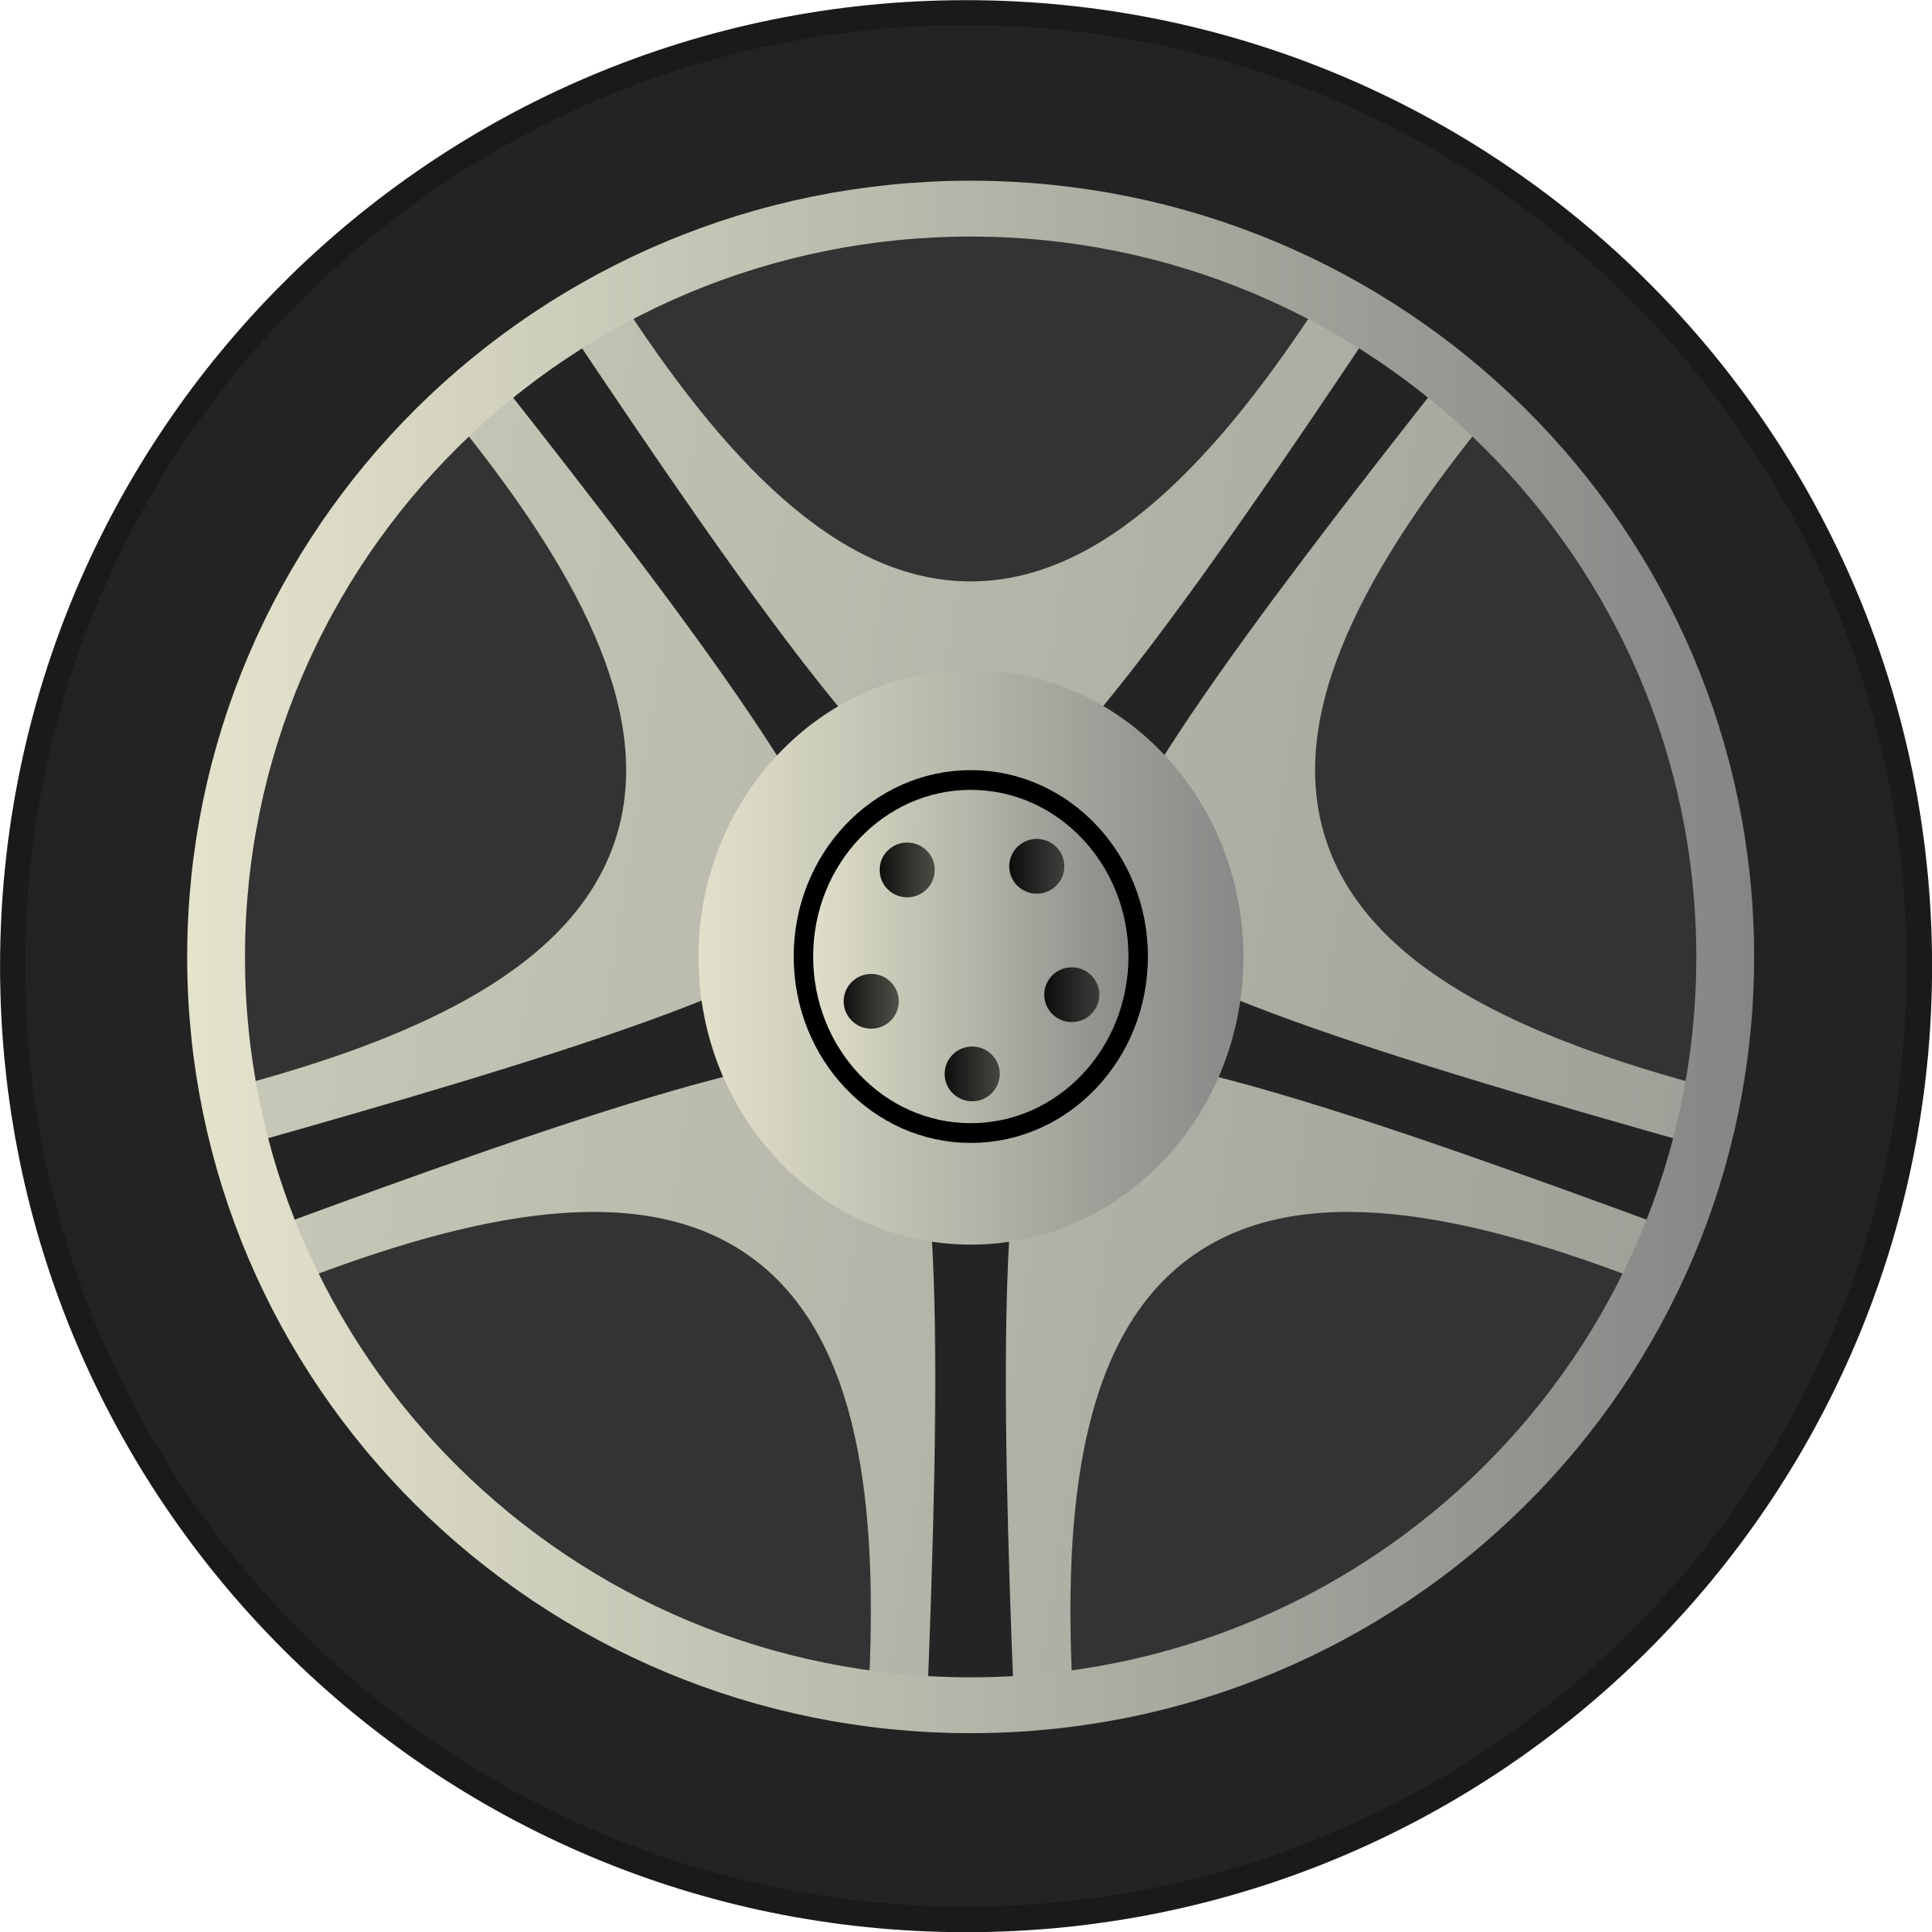 Tire clipart side view View View Simple Rims Wheel